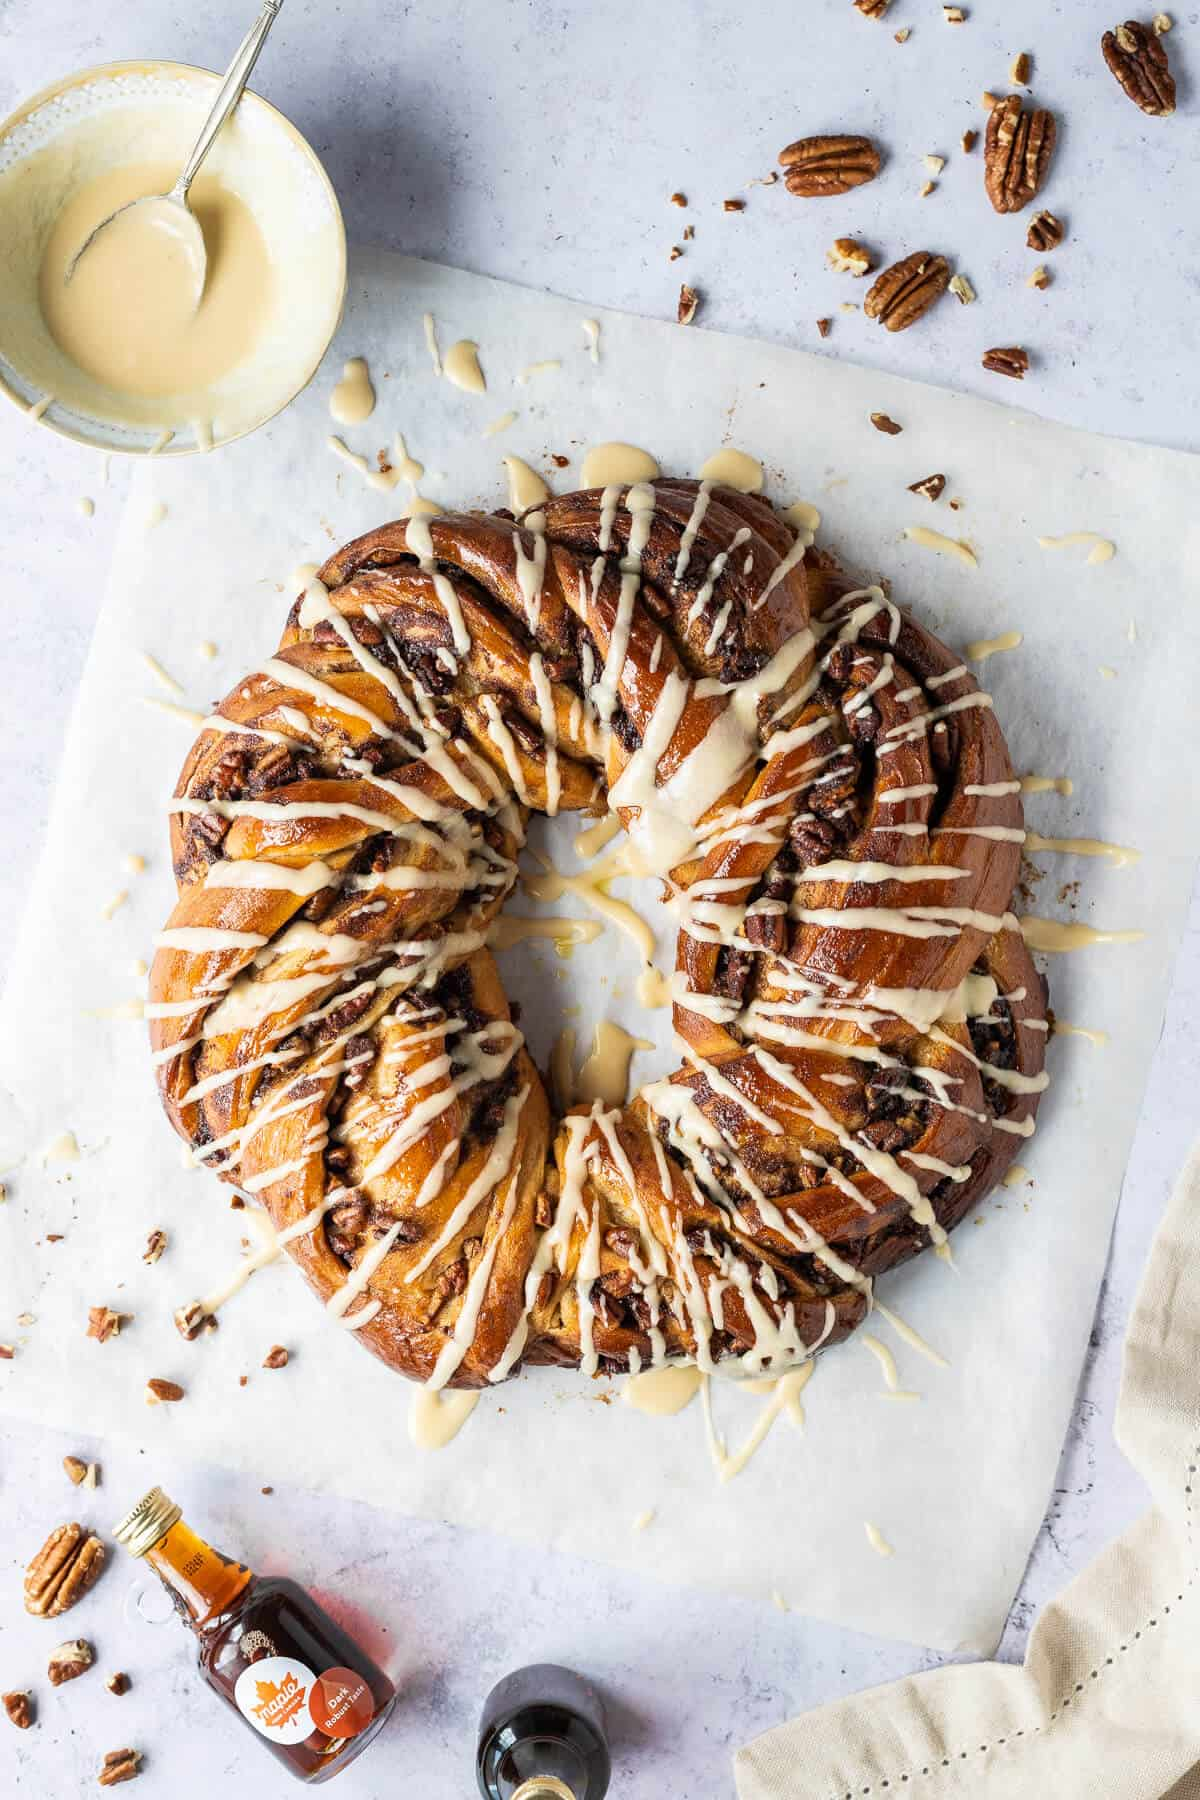 Maple pecan bread wreath from above on a sheet of baking parchment on a grey background.